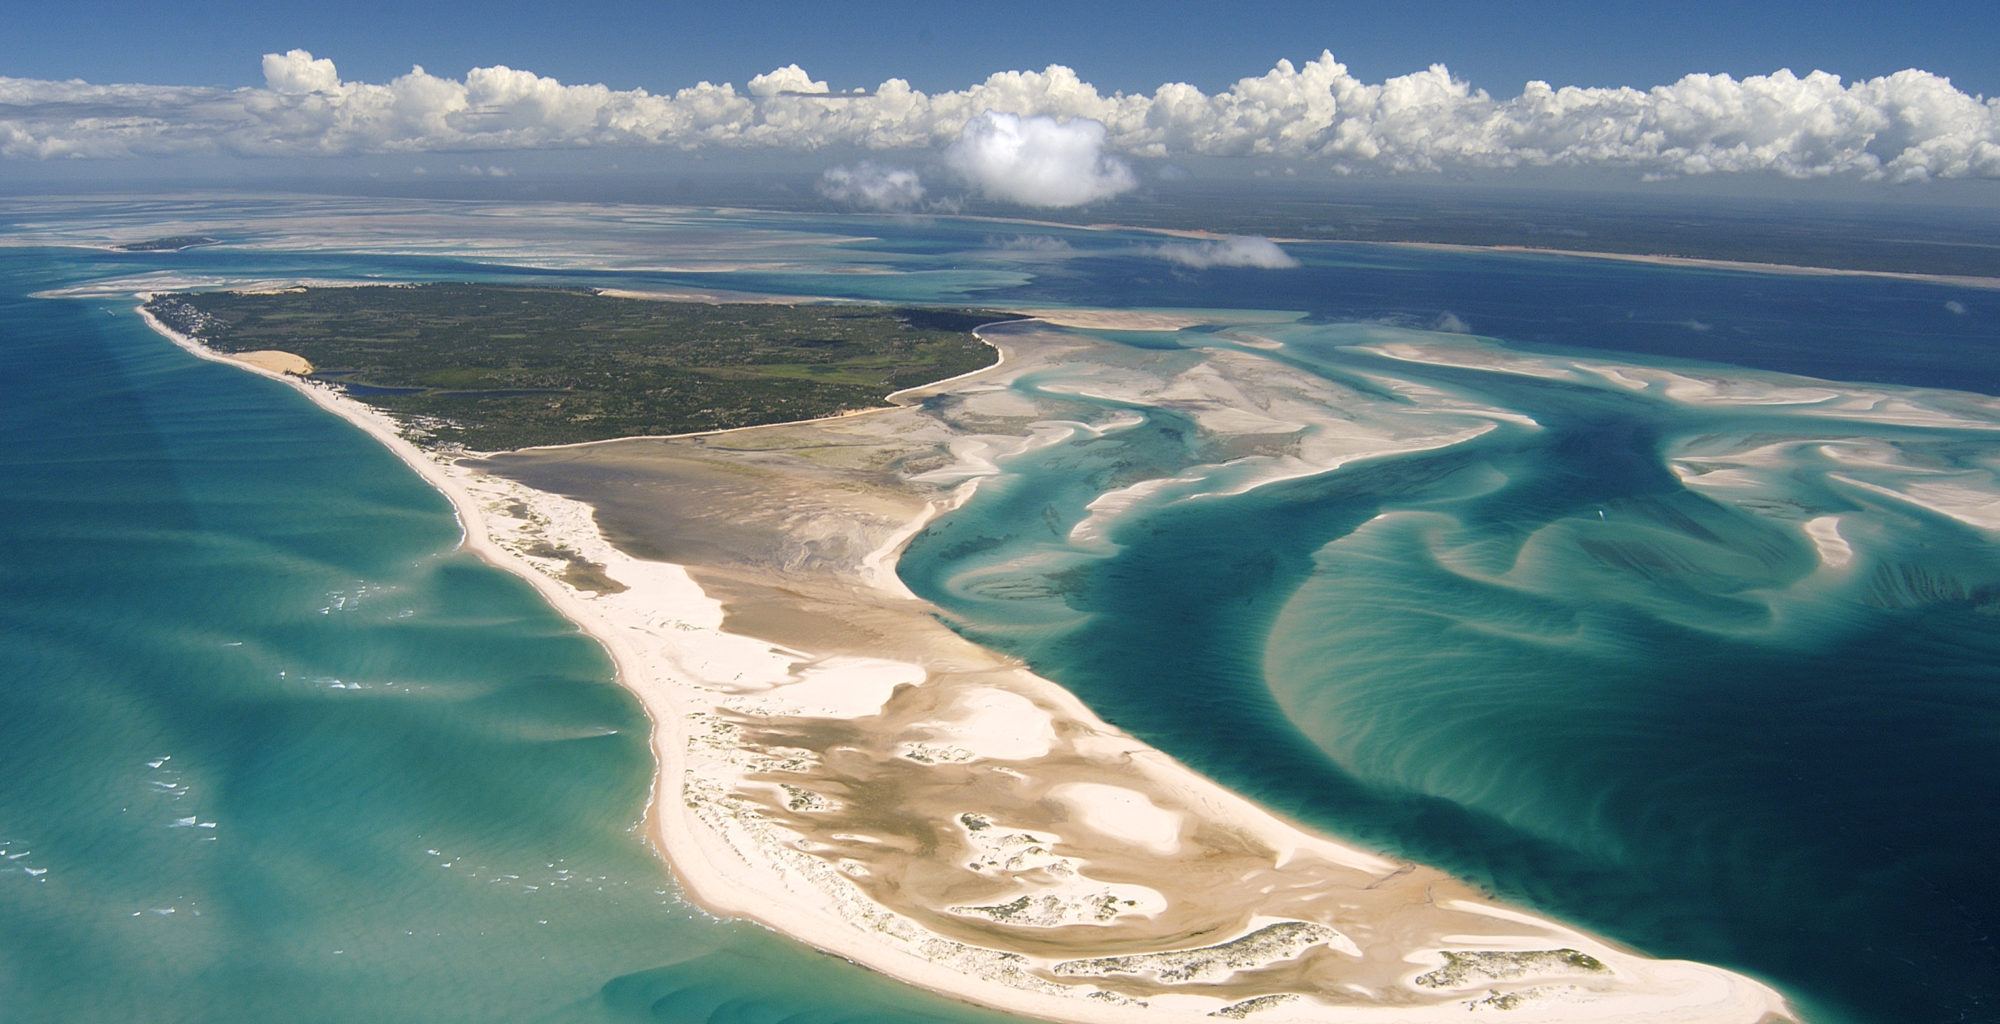 Mozambique-Bazaruto-Archipelago-North-Point